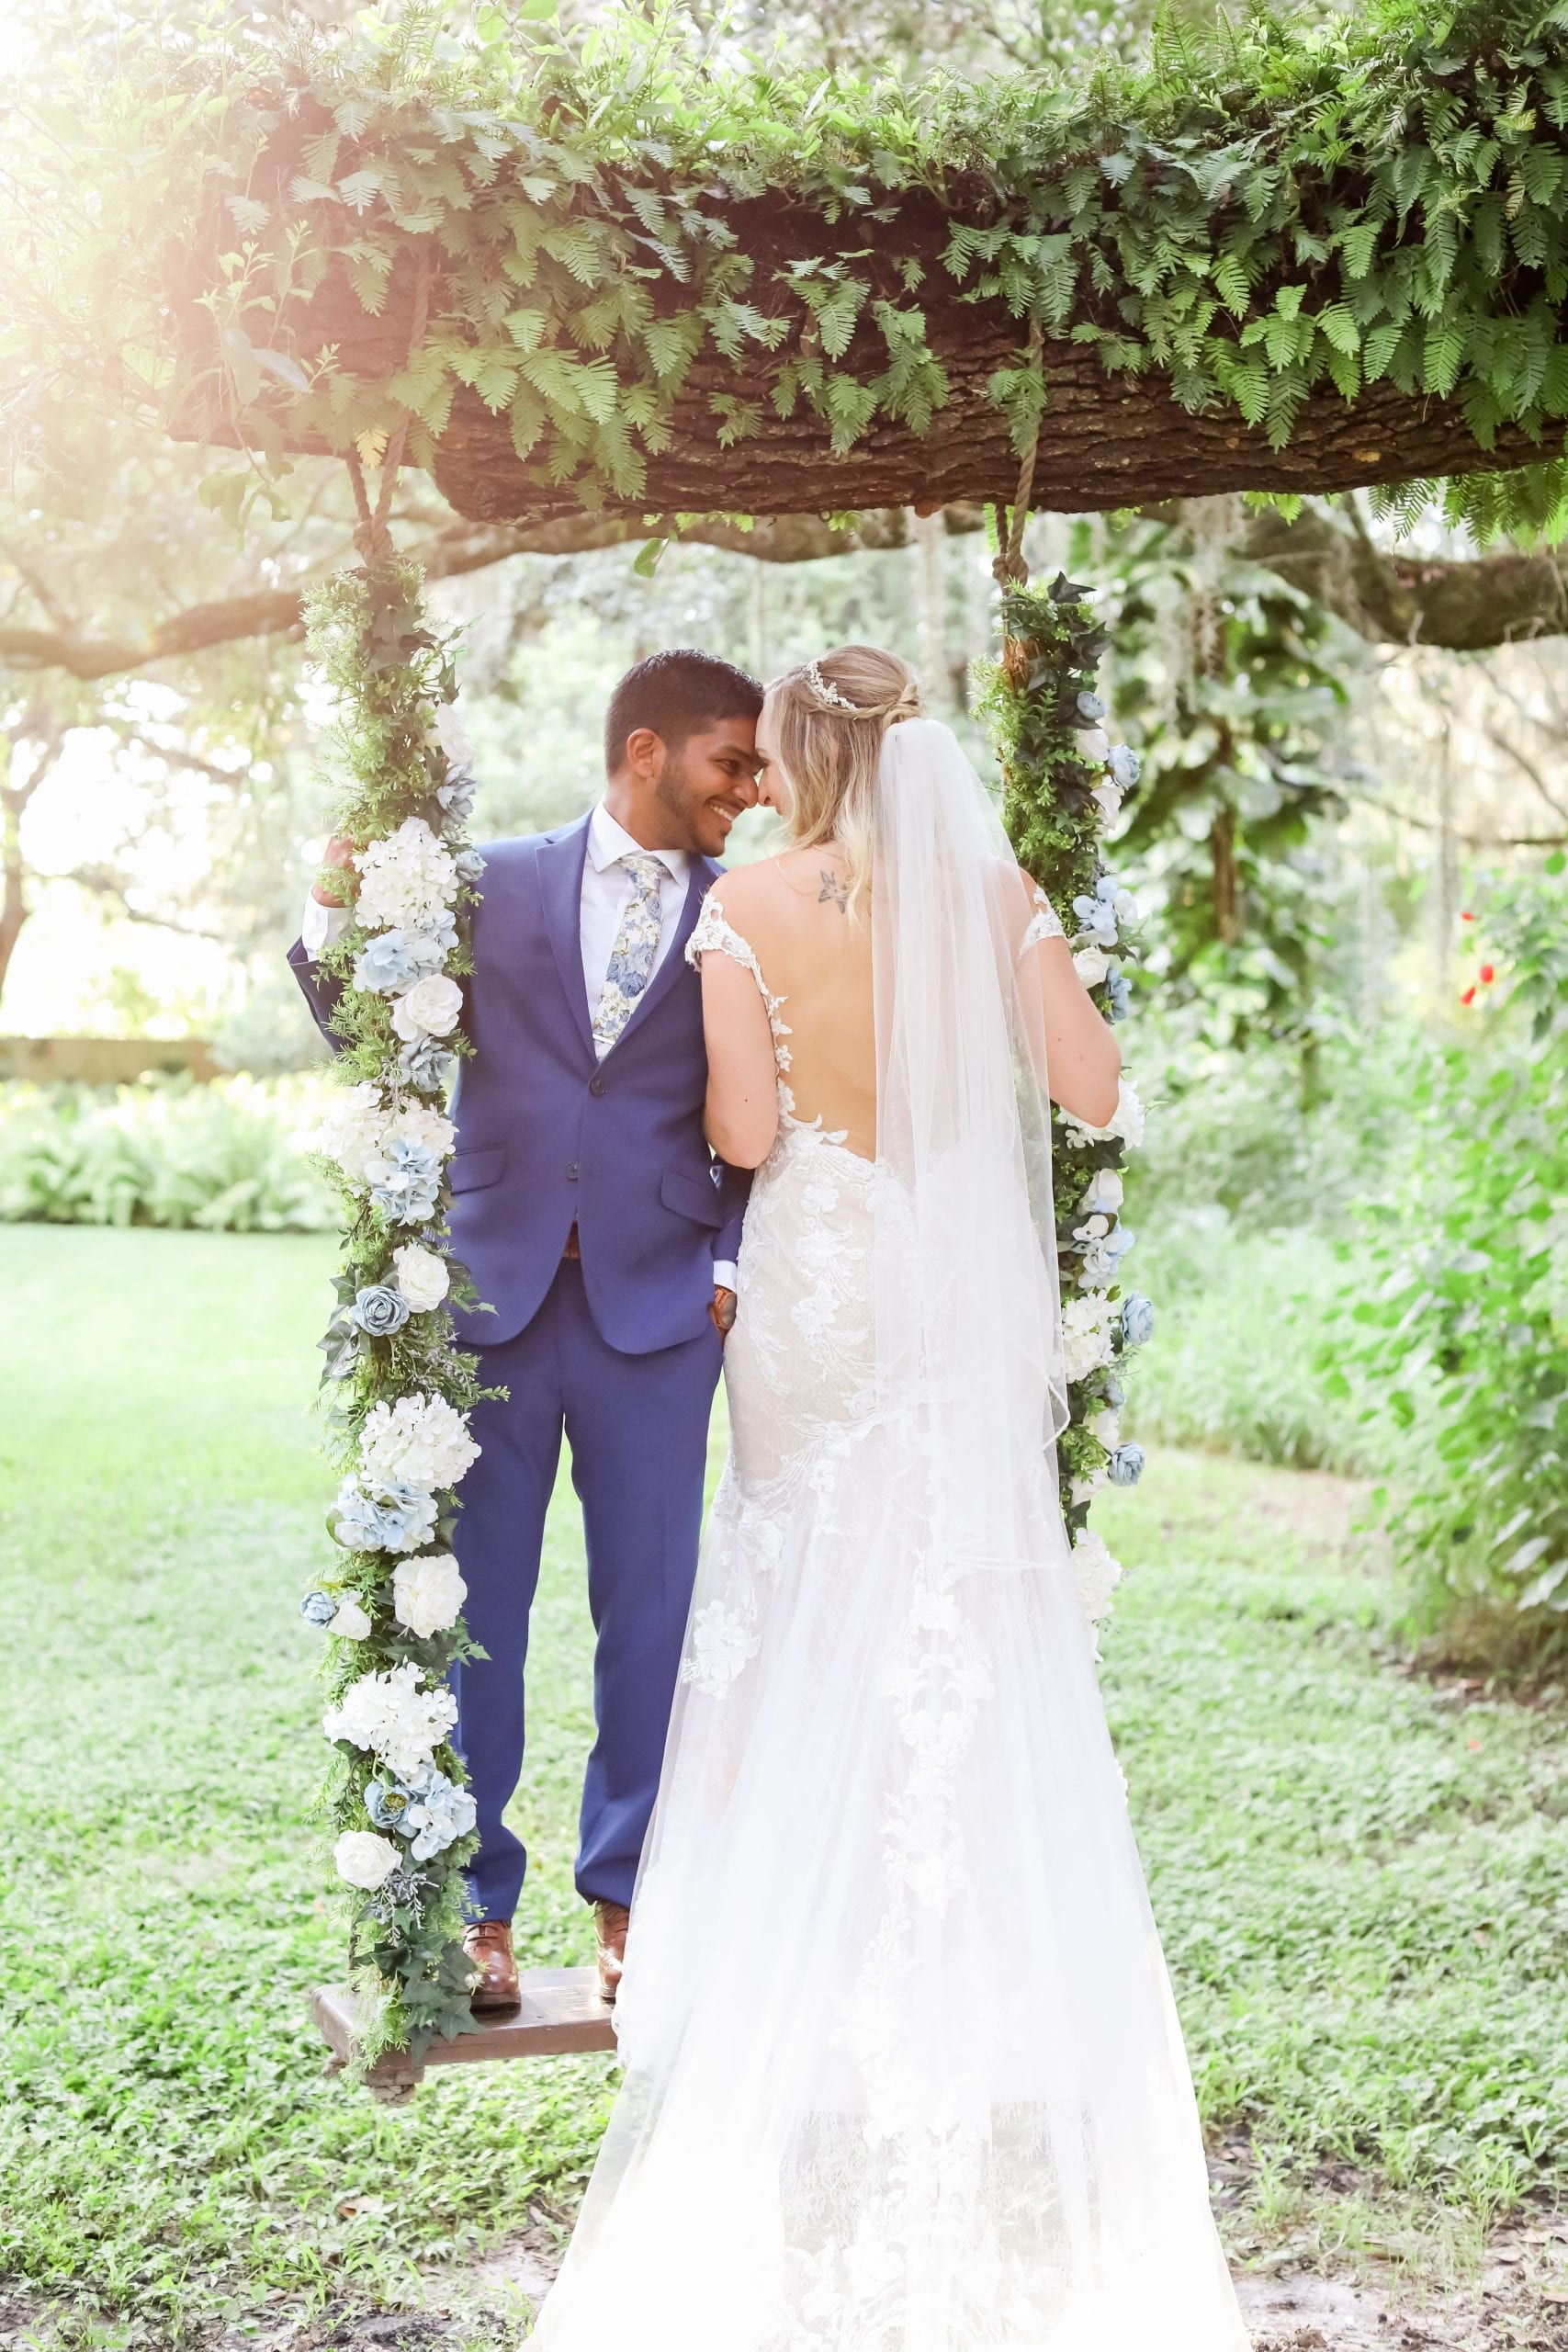 Ellie + Raj's Romantic Garden-Inspired Wedding